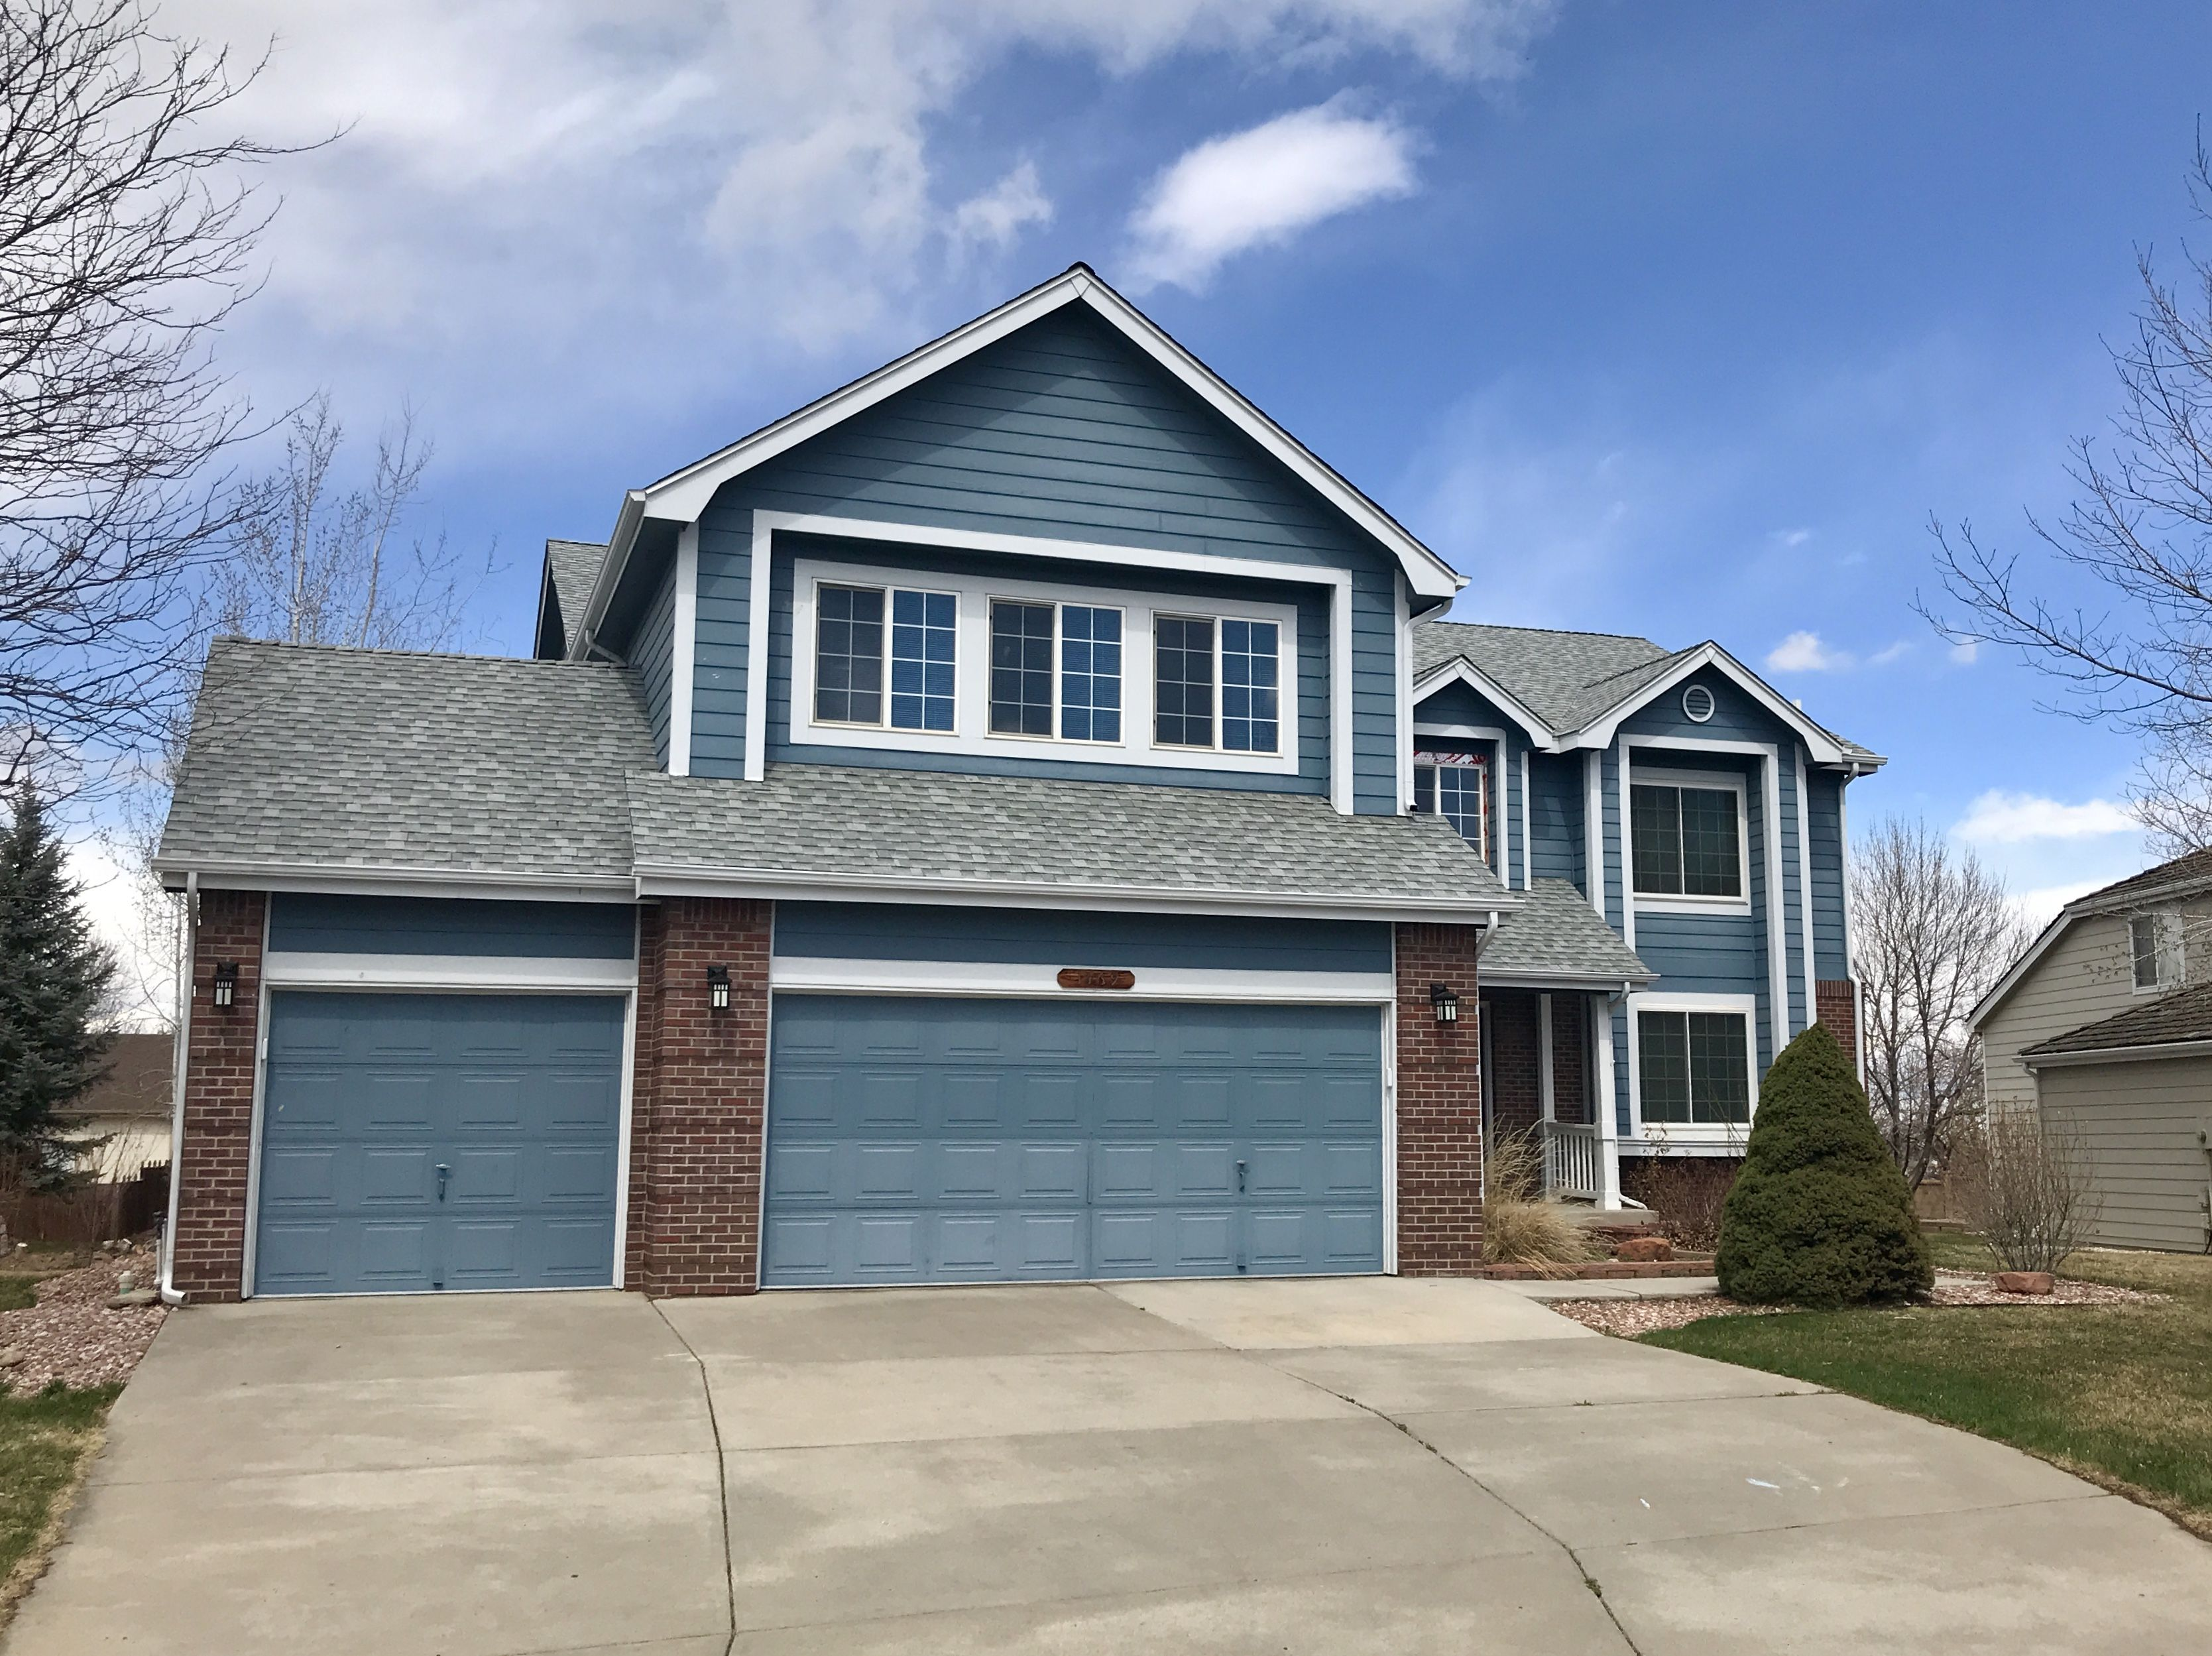 We Re Roofed This House In Loveland Using Gaf Timberline Hd Shingles In The Color Birchwood Architectural Shingles Residential Roofing Gaf Timberline Shingles